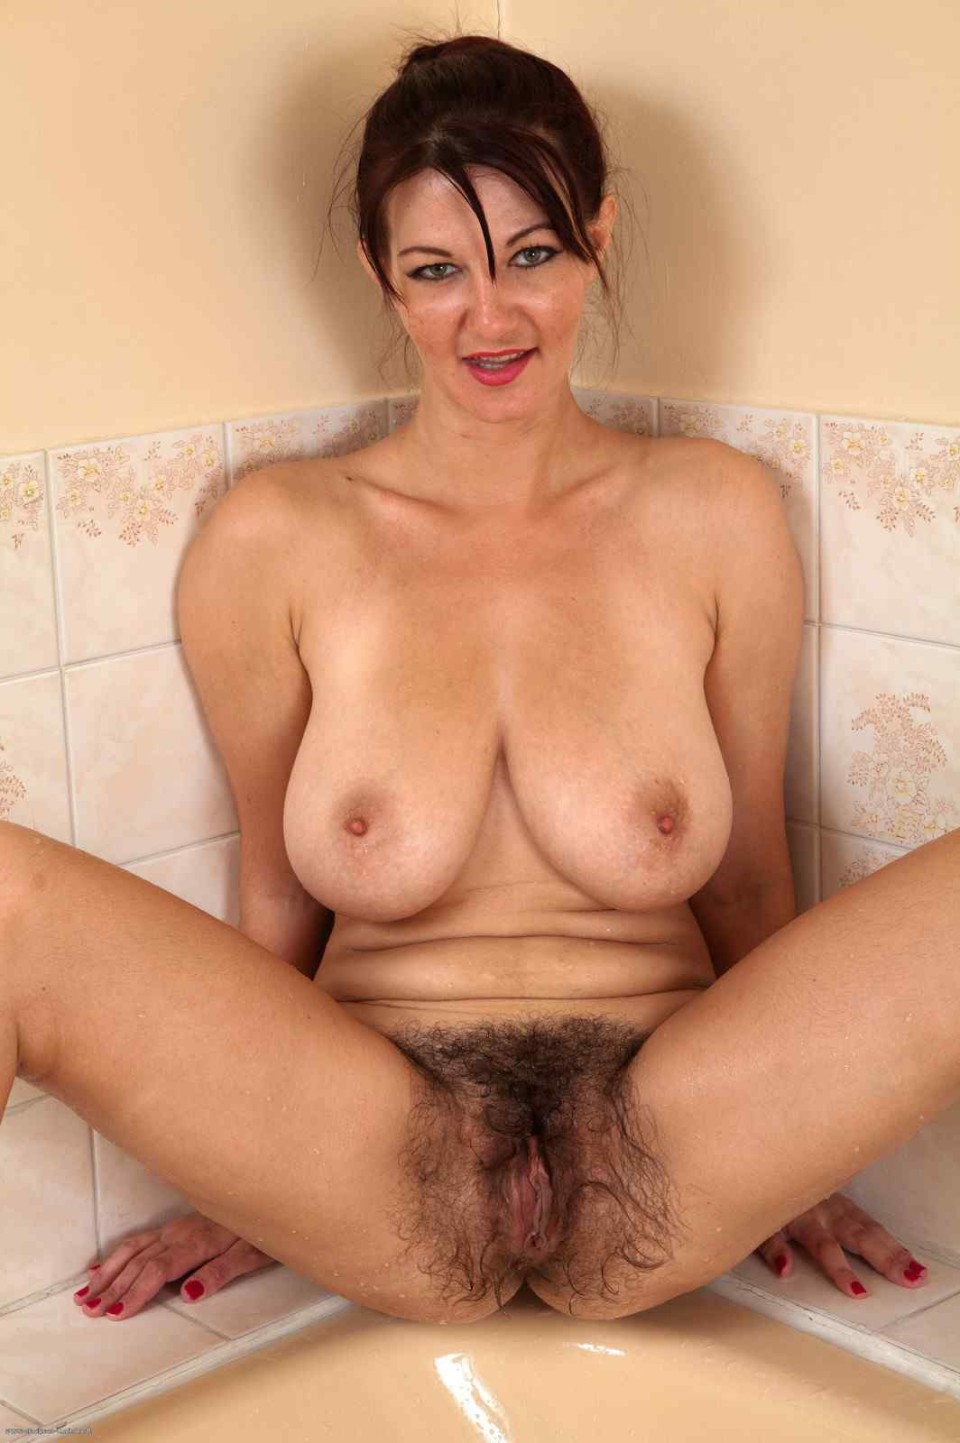 Hairy fat girl creampie slutload